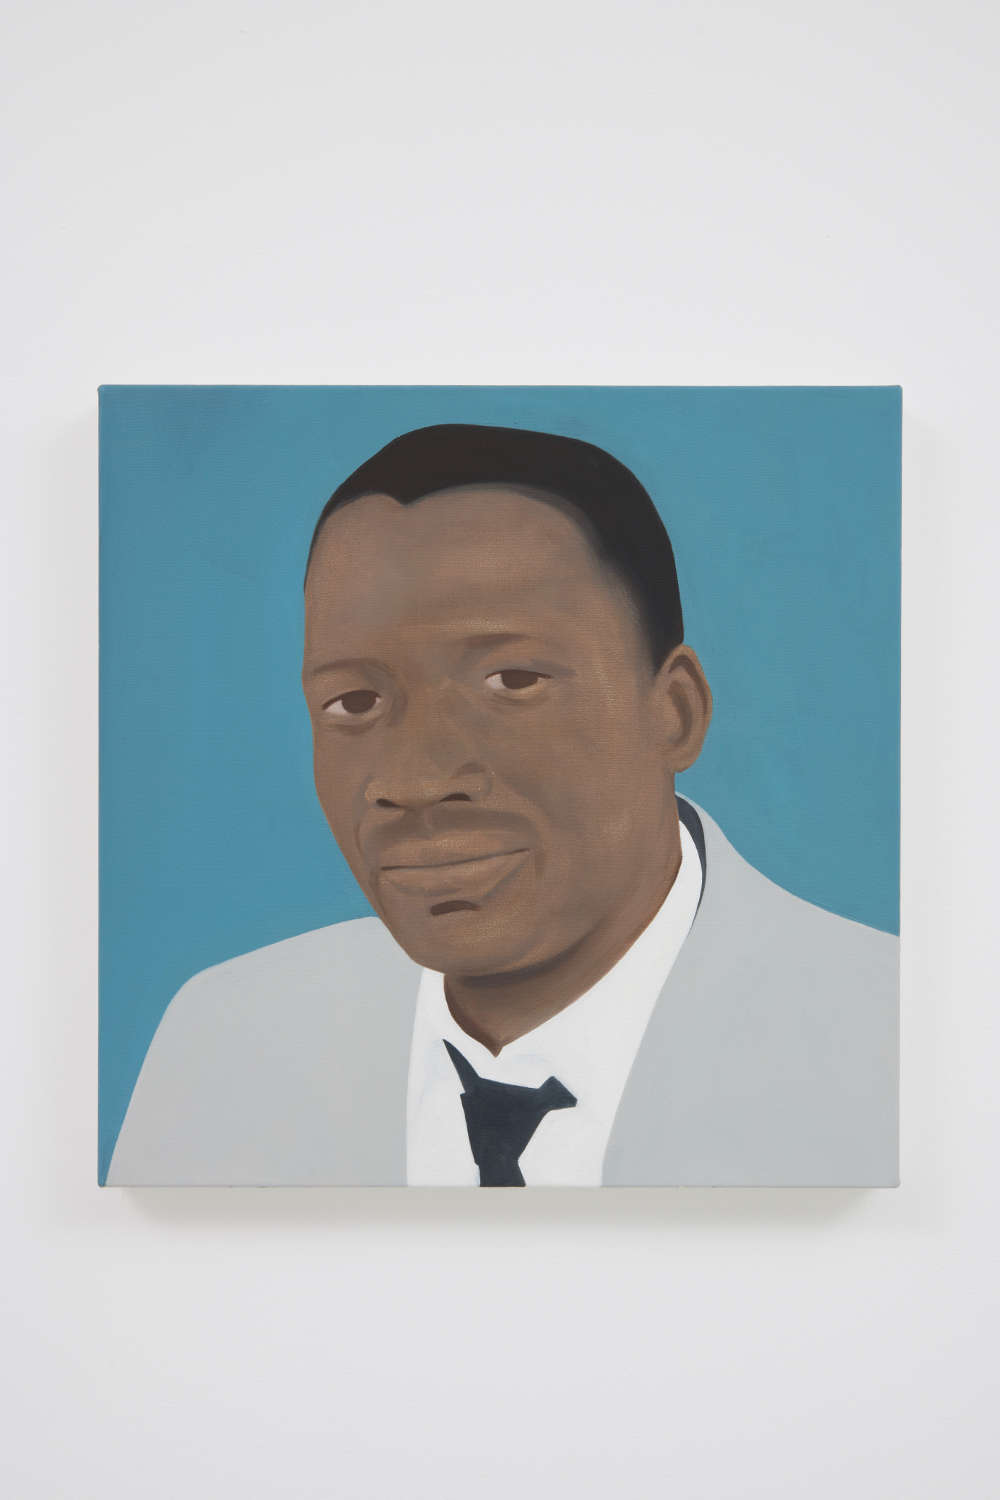 Thenjiwe Niki Nkosi, Sobukwe (After Robert Sobukwe), 2017. Oil on canvas 19.68 x 19.68 in (50 x 50 cm) Courtesy of the artist and Roberts Projects, Los Angeles, California. Photo Robert Wedemeyer